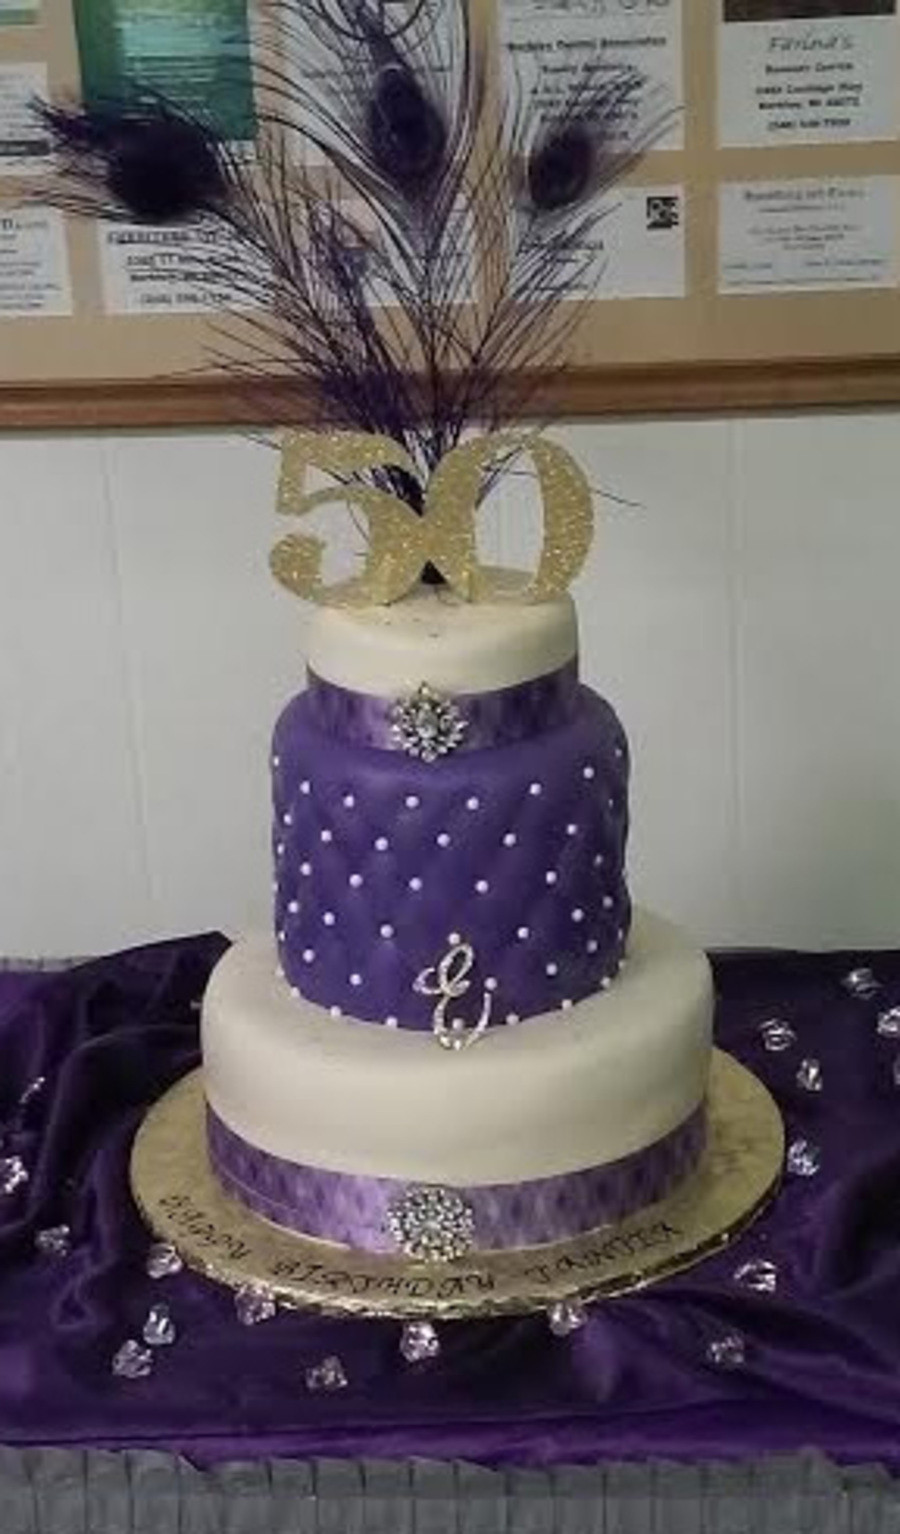 Best ideas about 3 Tier Birthday Cake . Save or Pin 3 Tier 50Th Birthday Cake With A Taller 2Nd Tier Now.